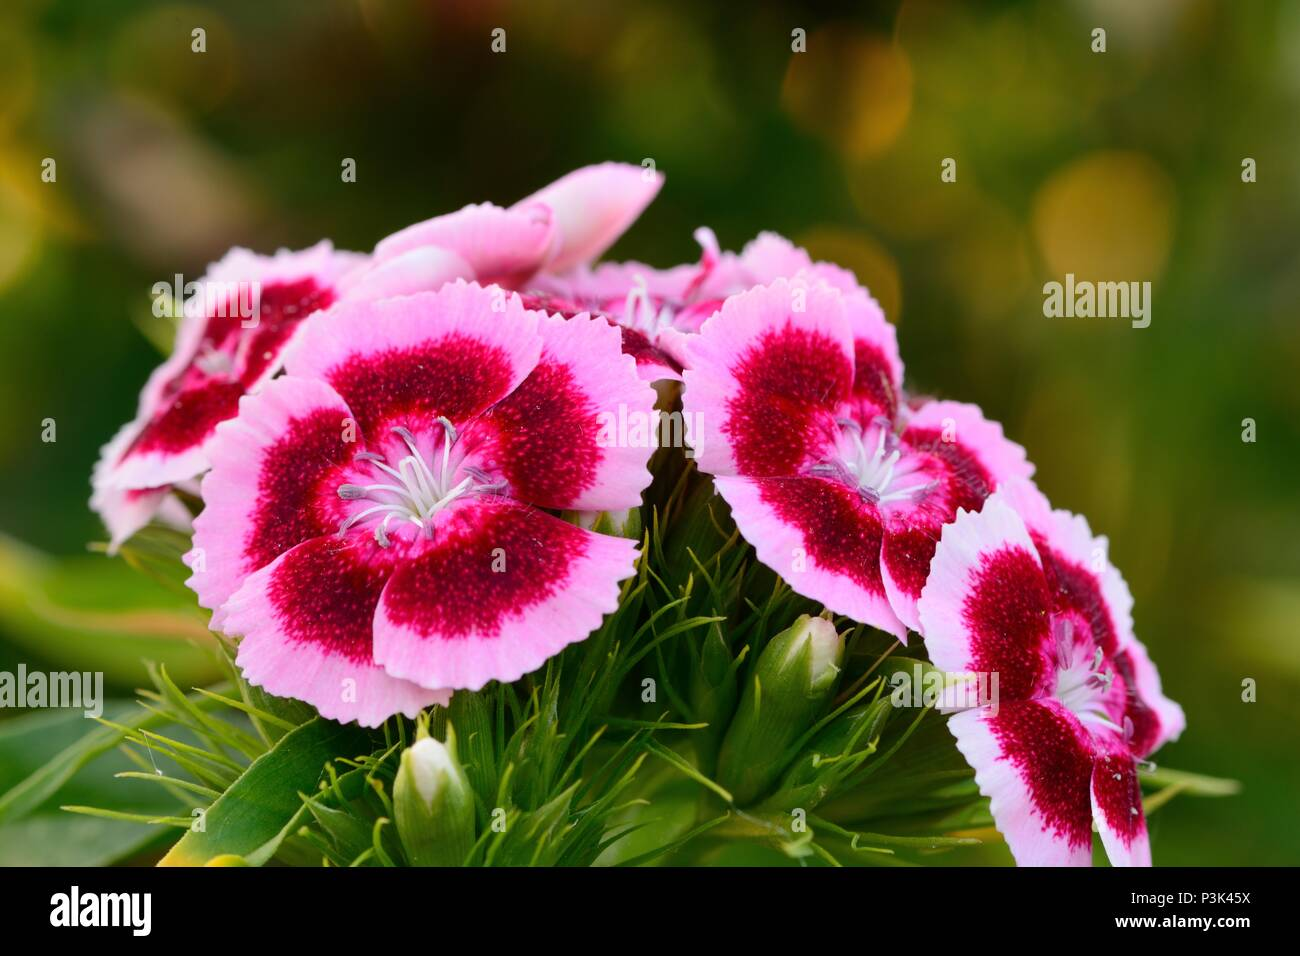 Close up of pink and white sweet william flowers in bloom stock close up of pink and white sweet william flowers in bloom mightylinksfo